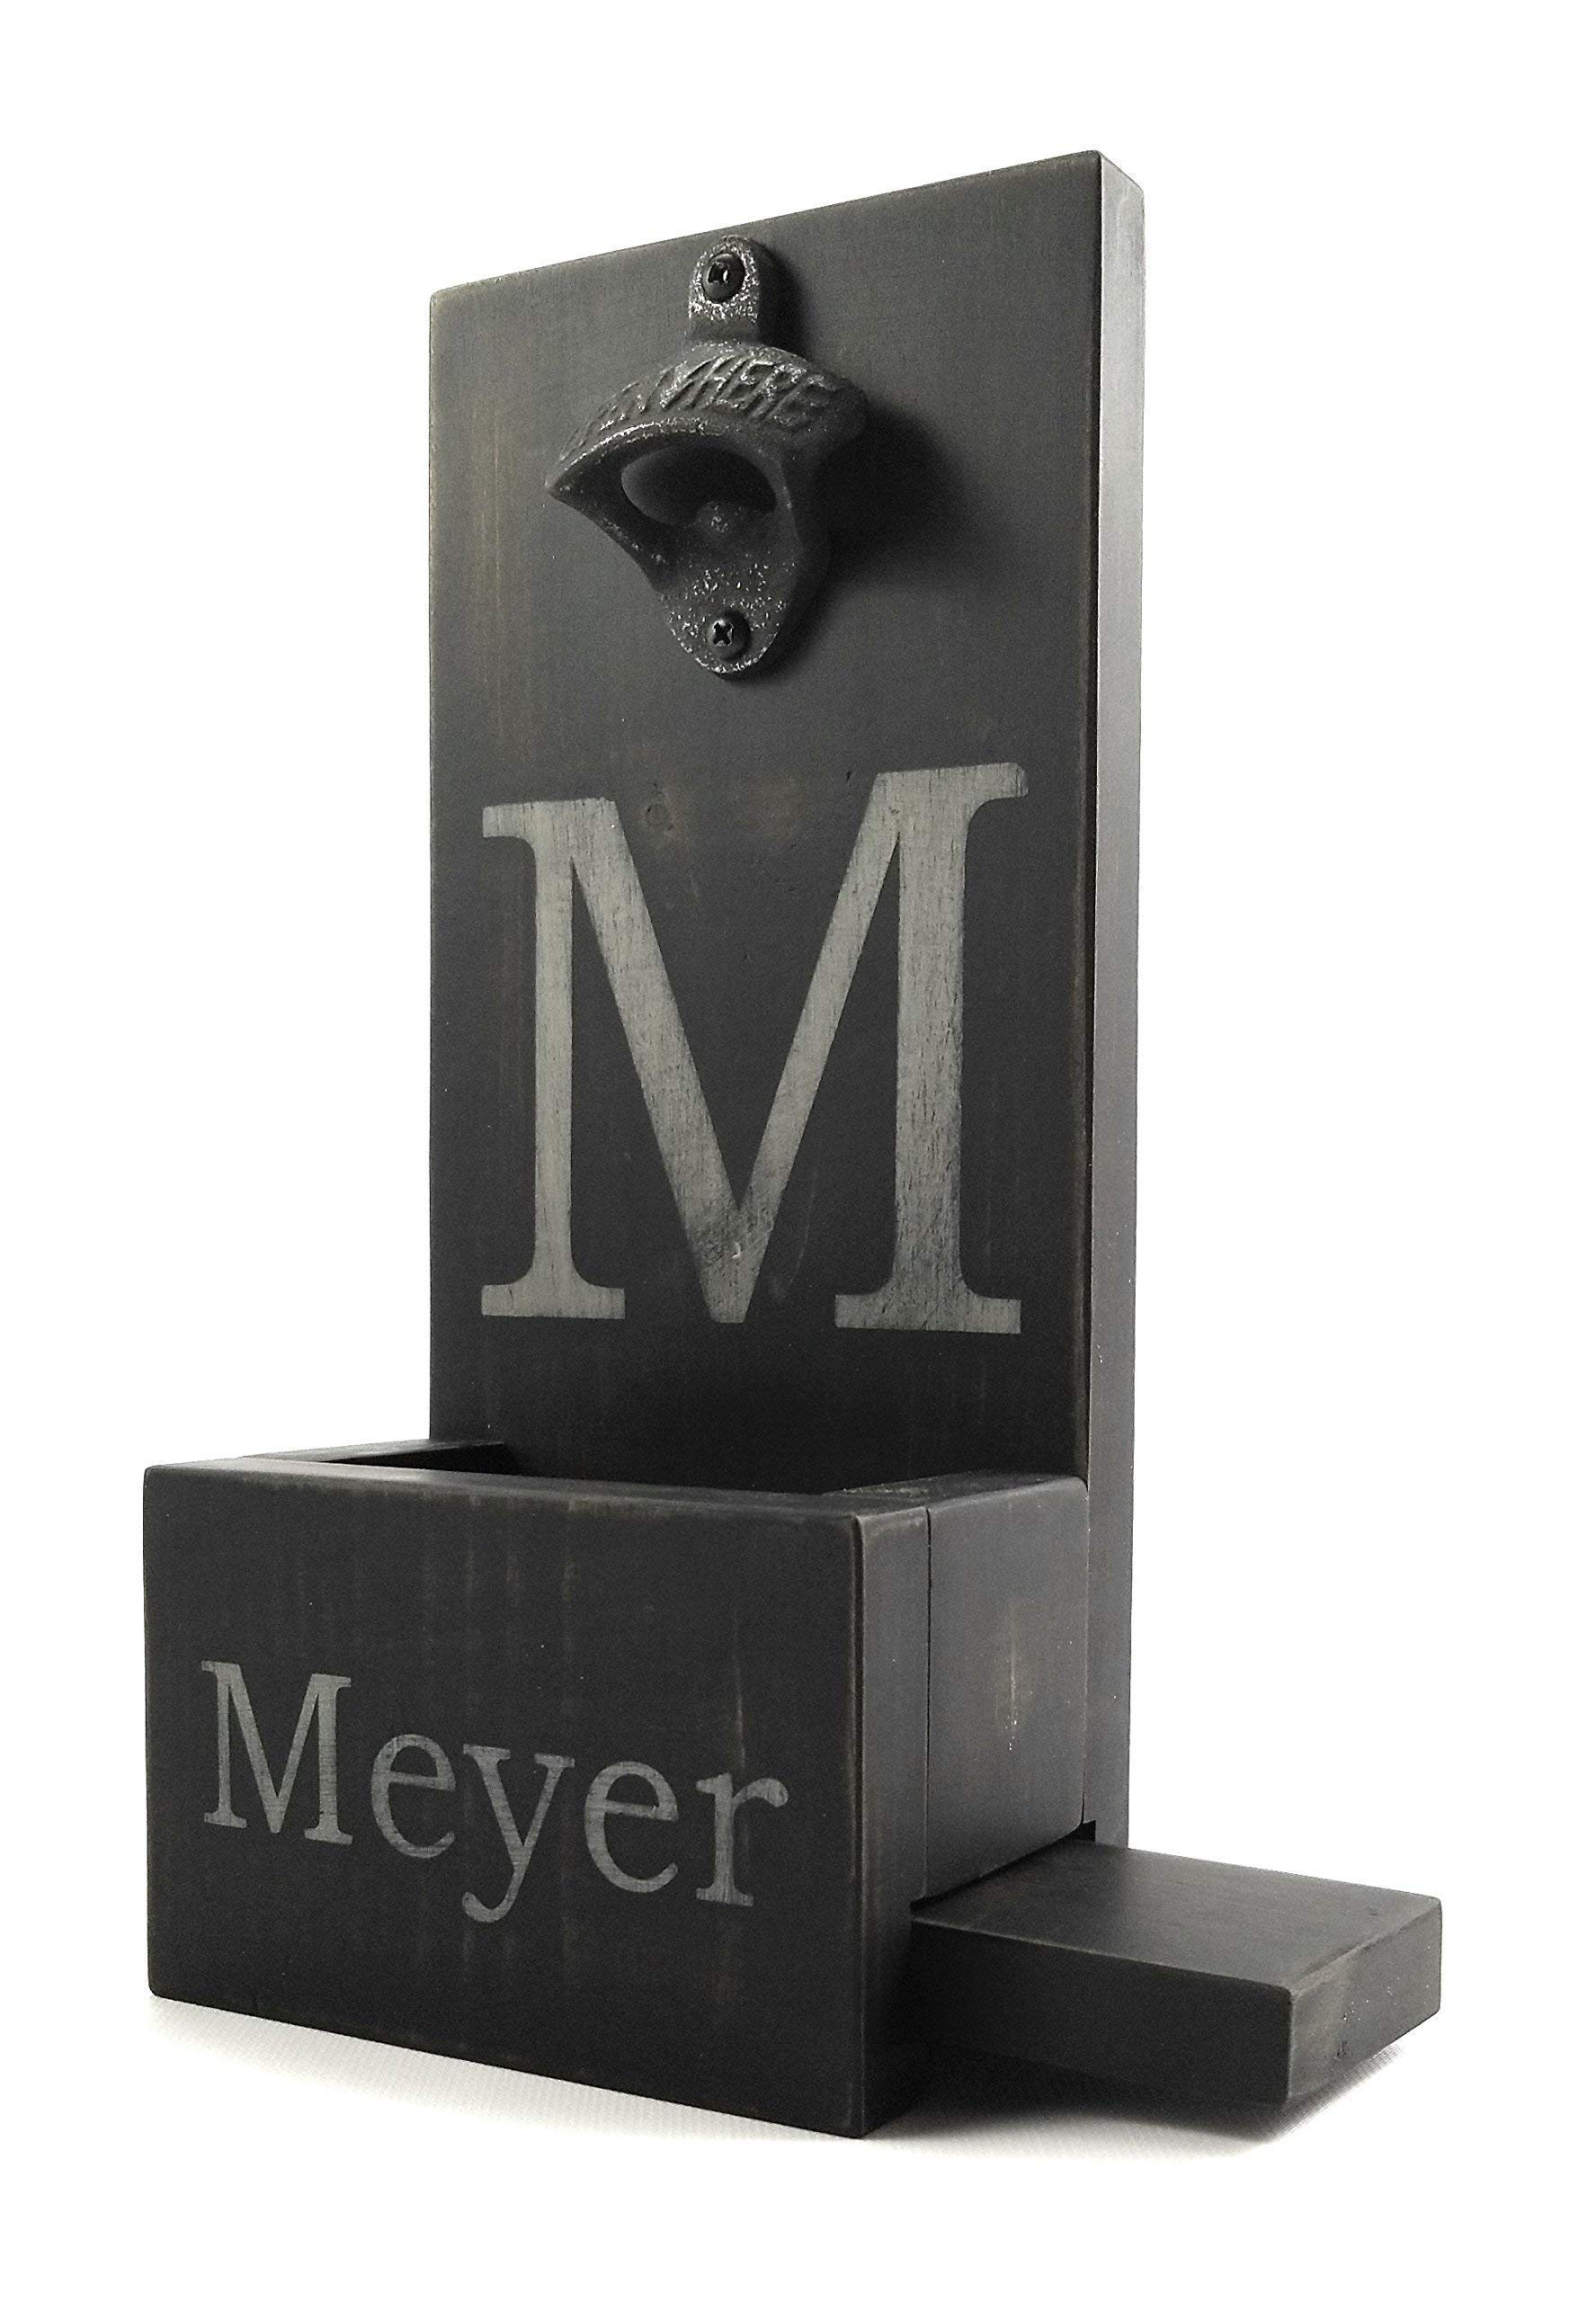 Wooden Wall Mount Bottle Opener and Cap Catcher - Personalized- Monogram - Distressed by R-Family Workshop